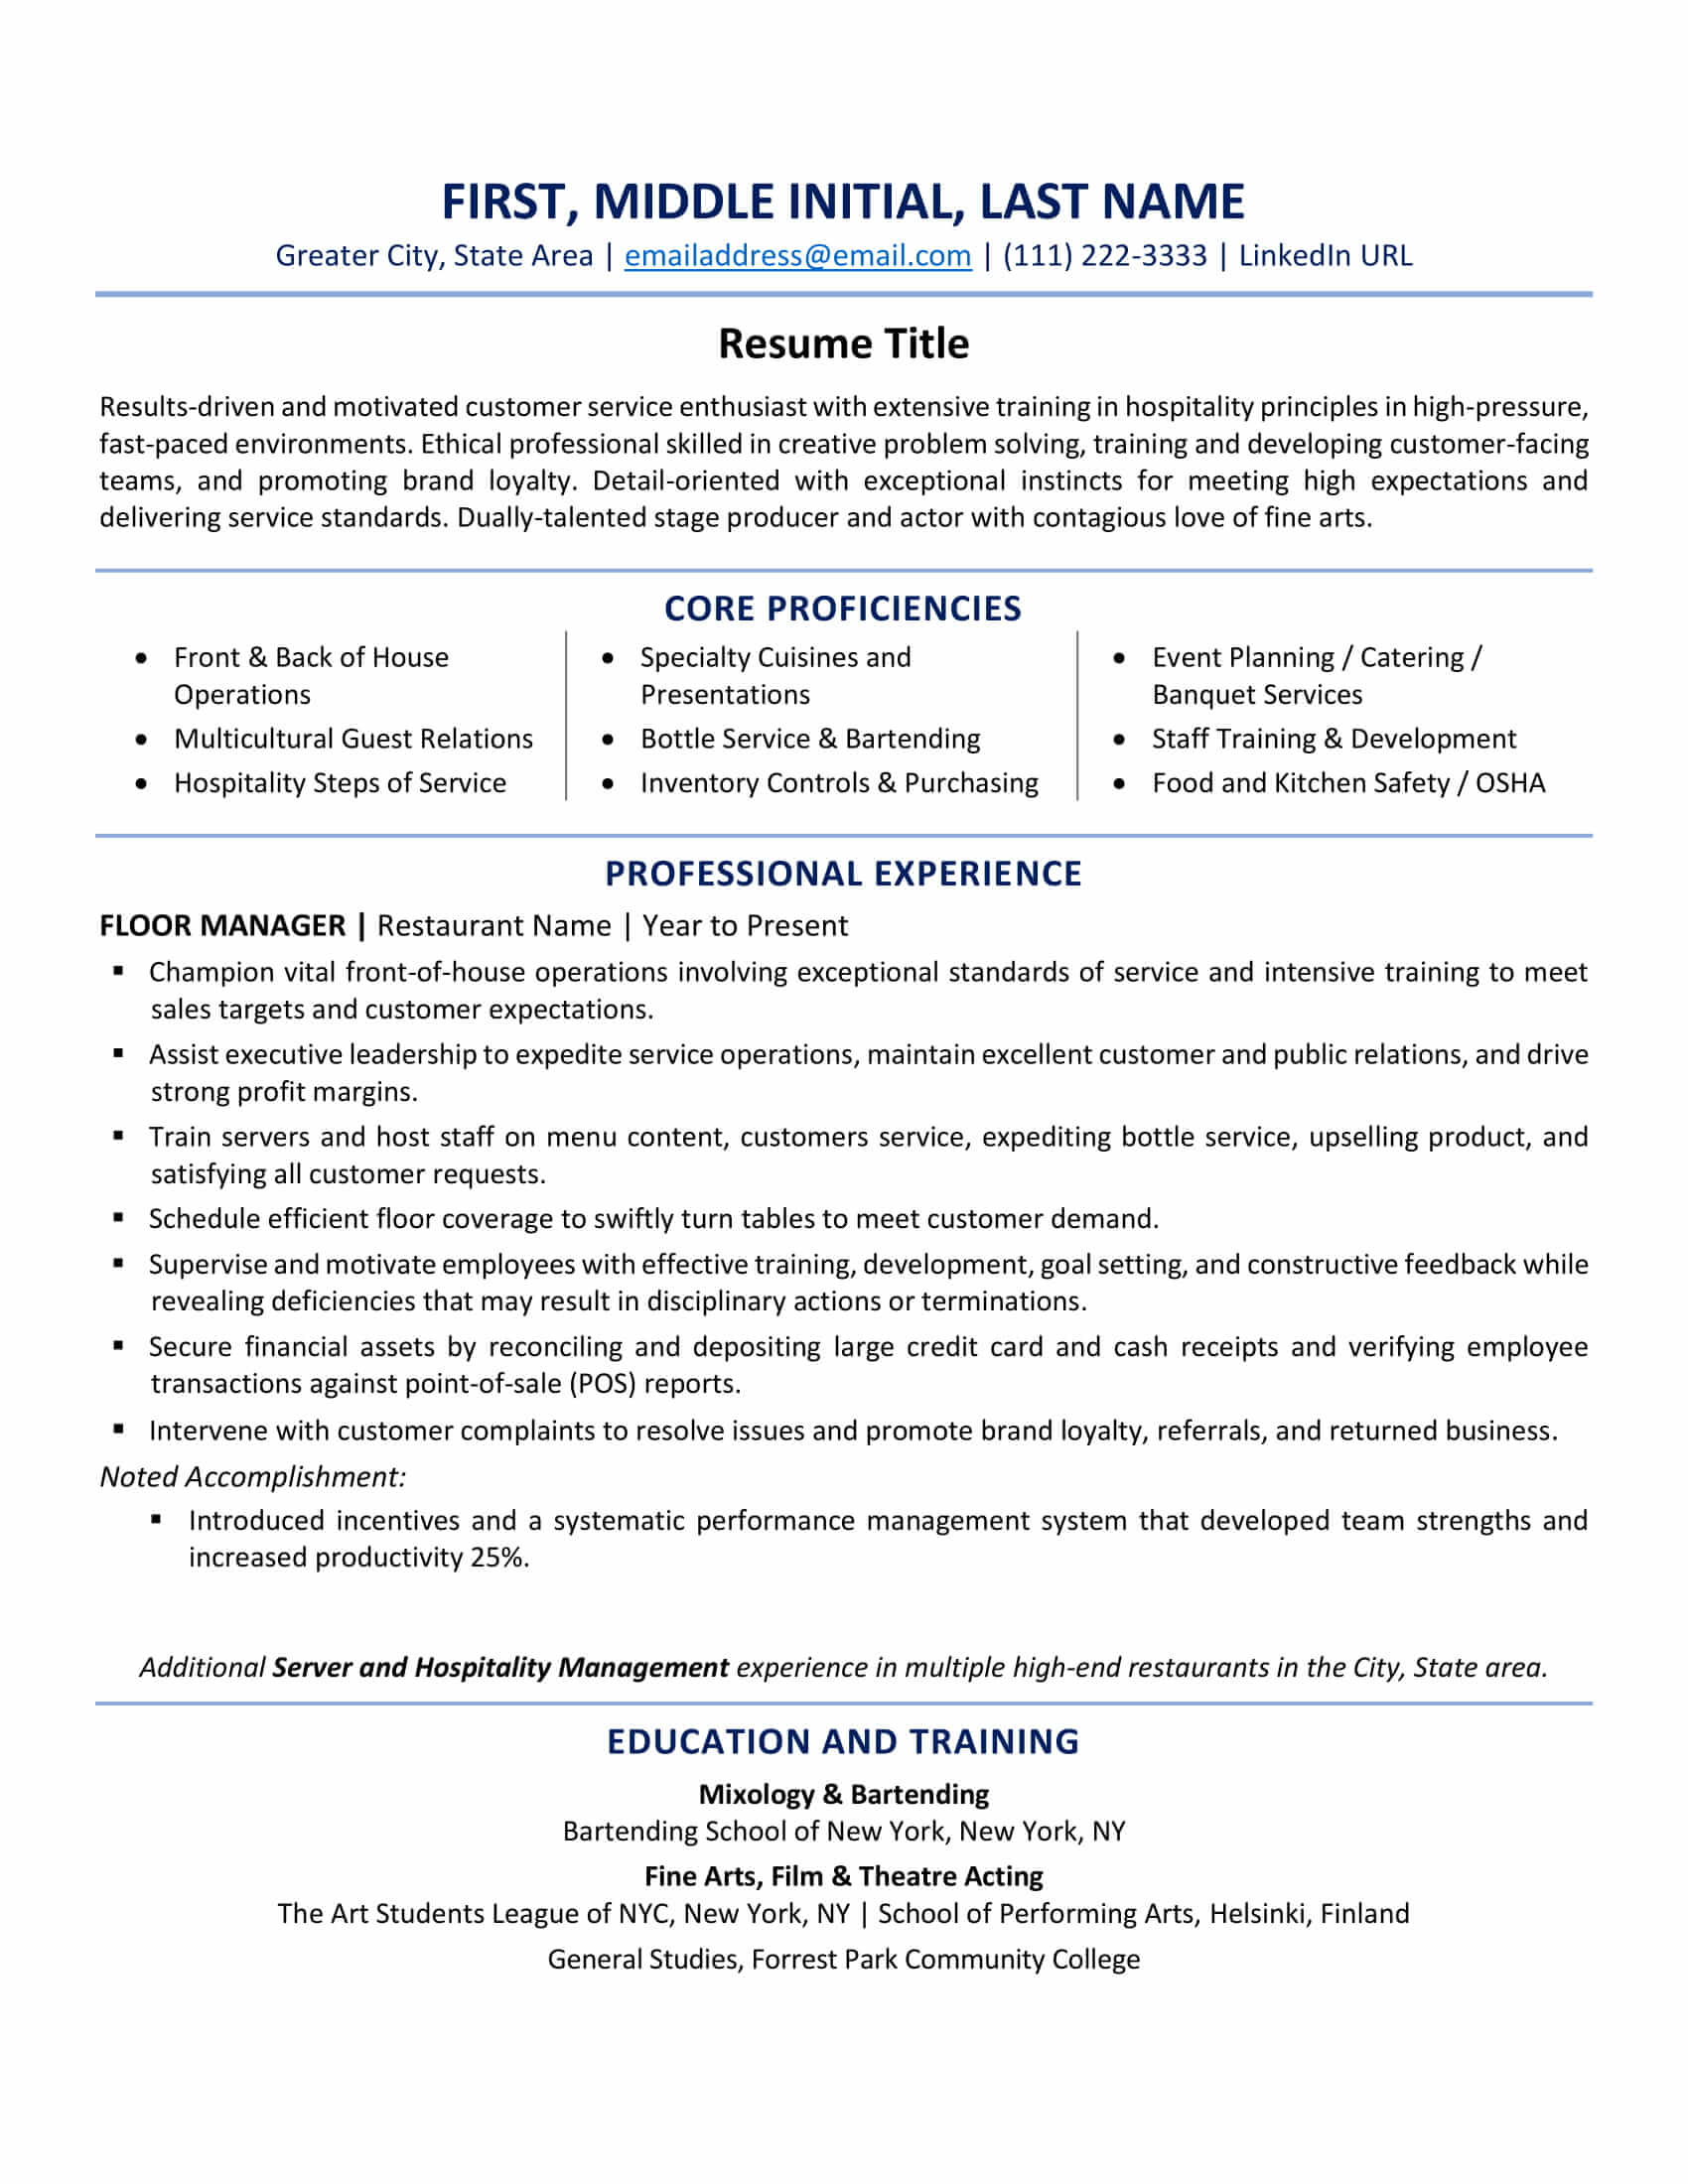 when to use one resume in example or two vs cv work first time objective samples for Resume One Or Two Page Resume 2019